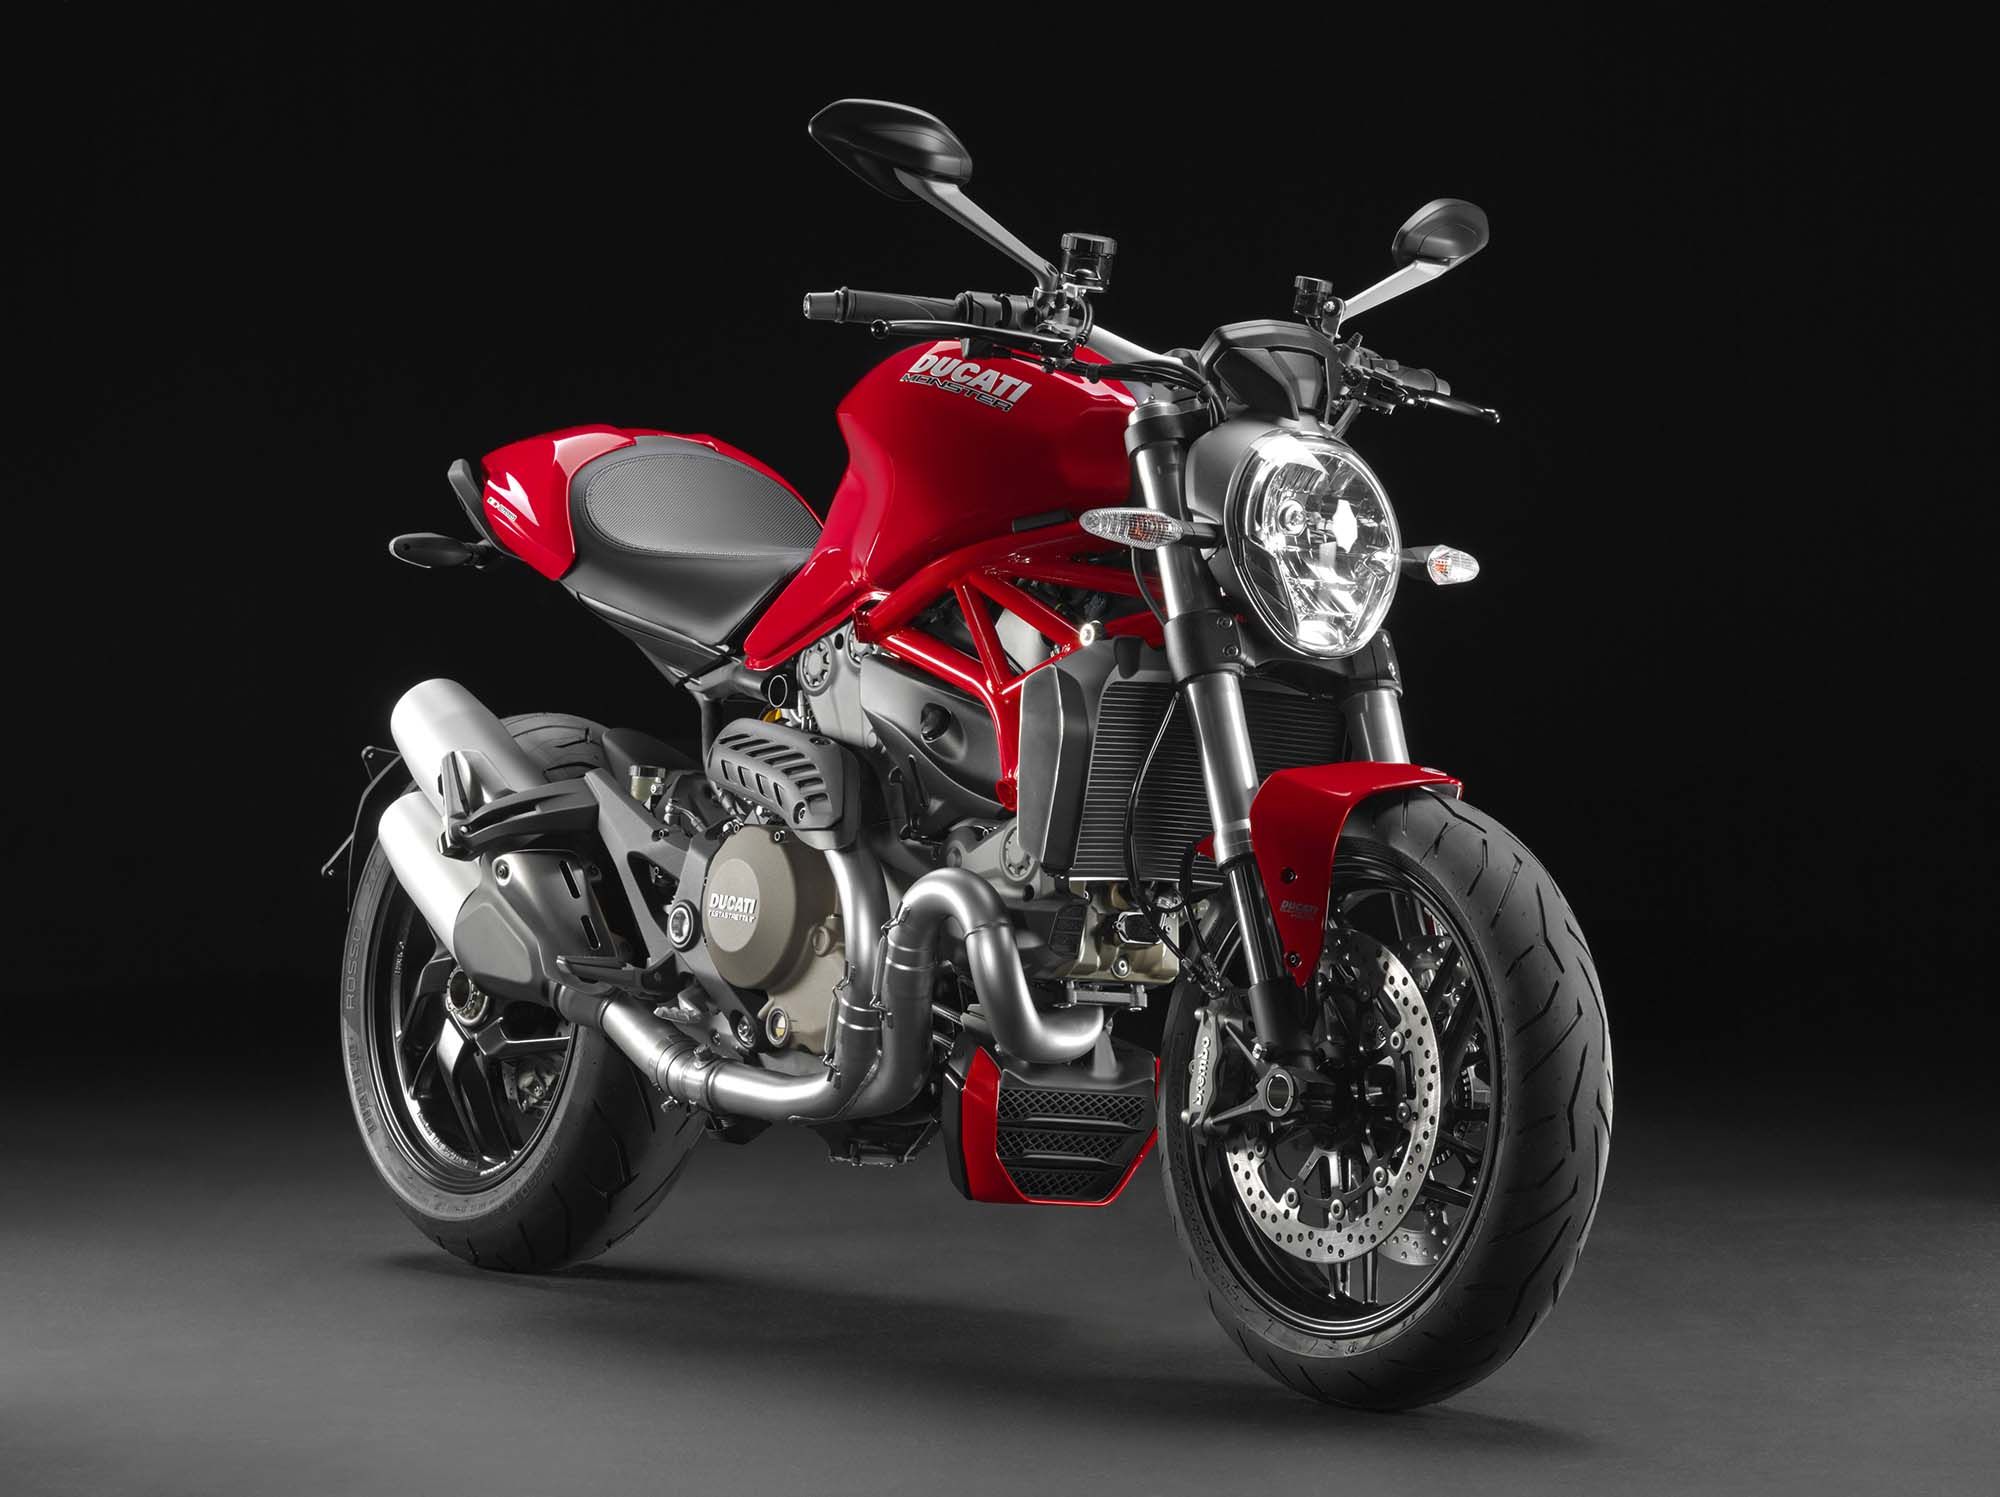 2014 ducati monster 1200 - water-cooling an icon - asphalt & rubber